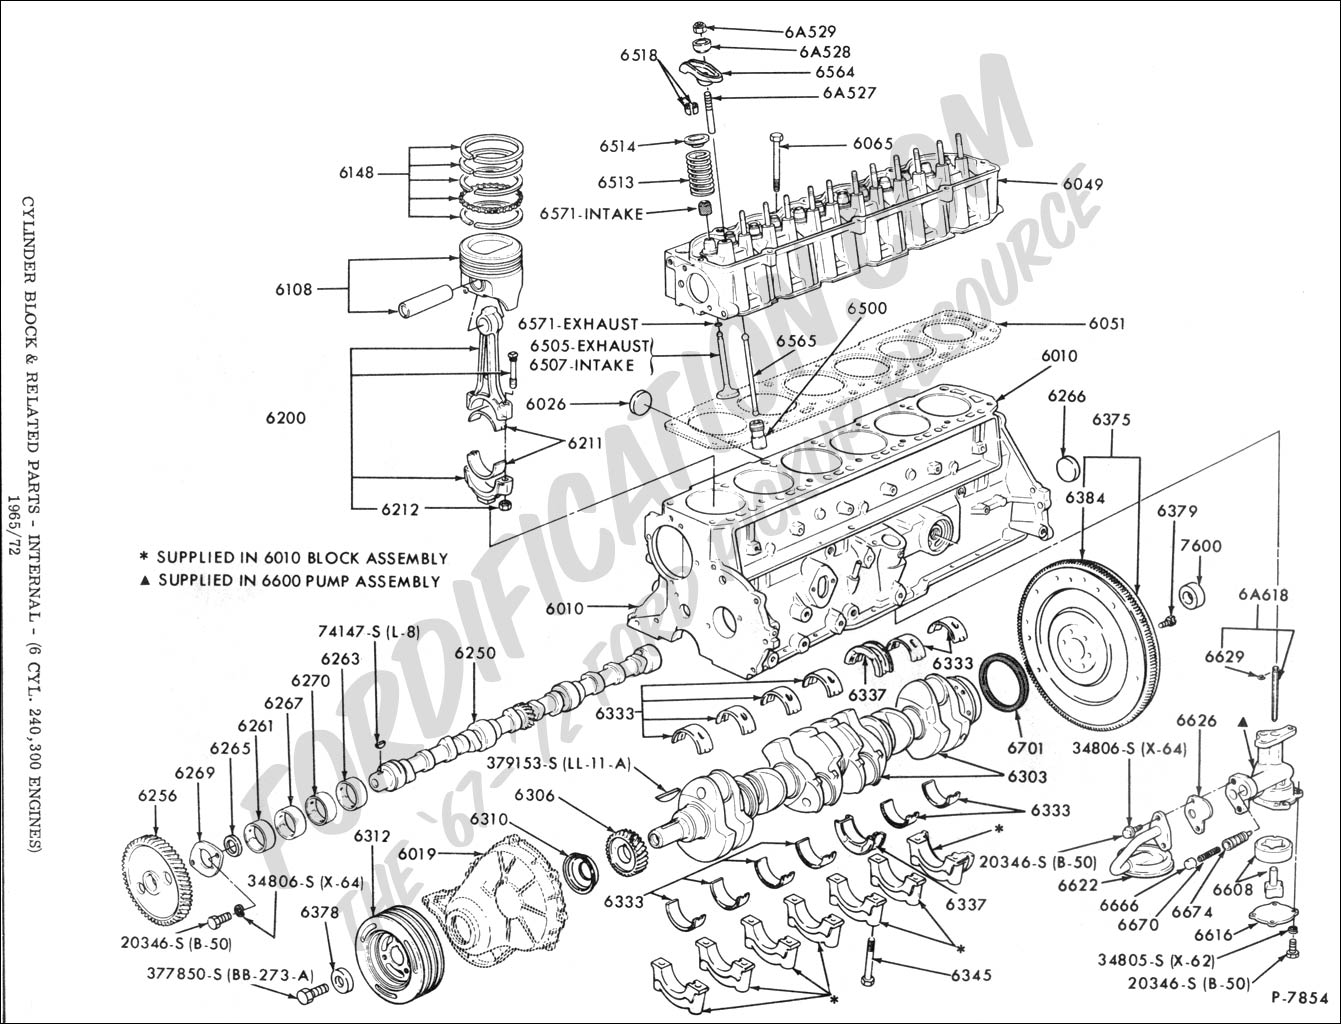 1970 Ford 302 Engine Parts Diagram | Wiring Library